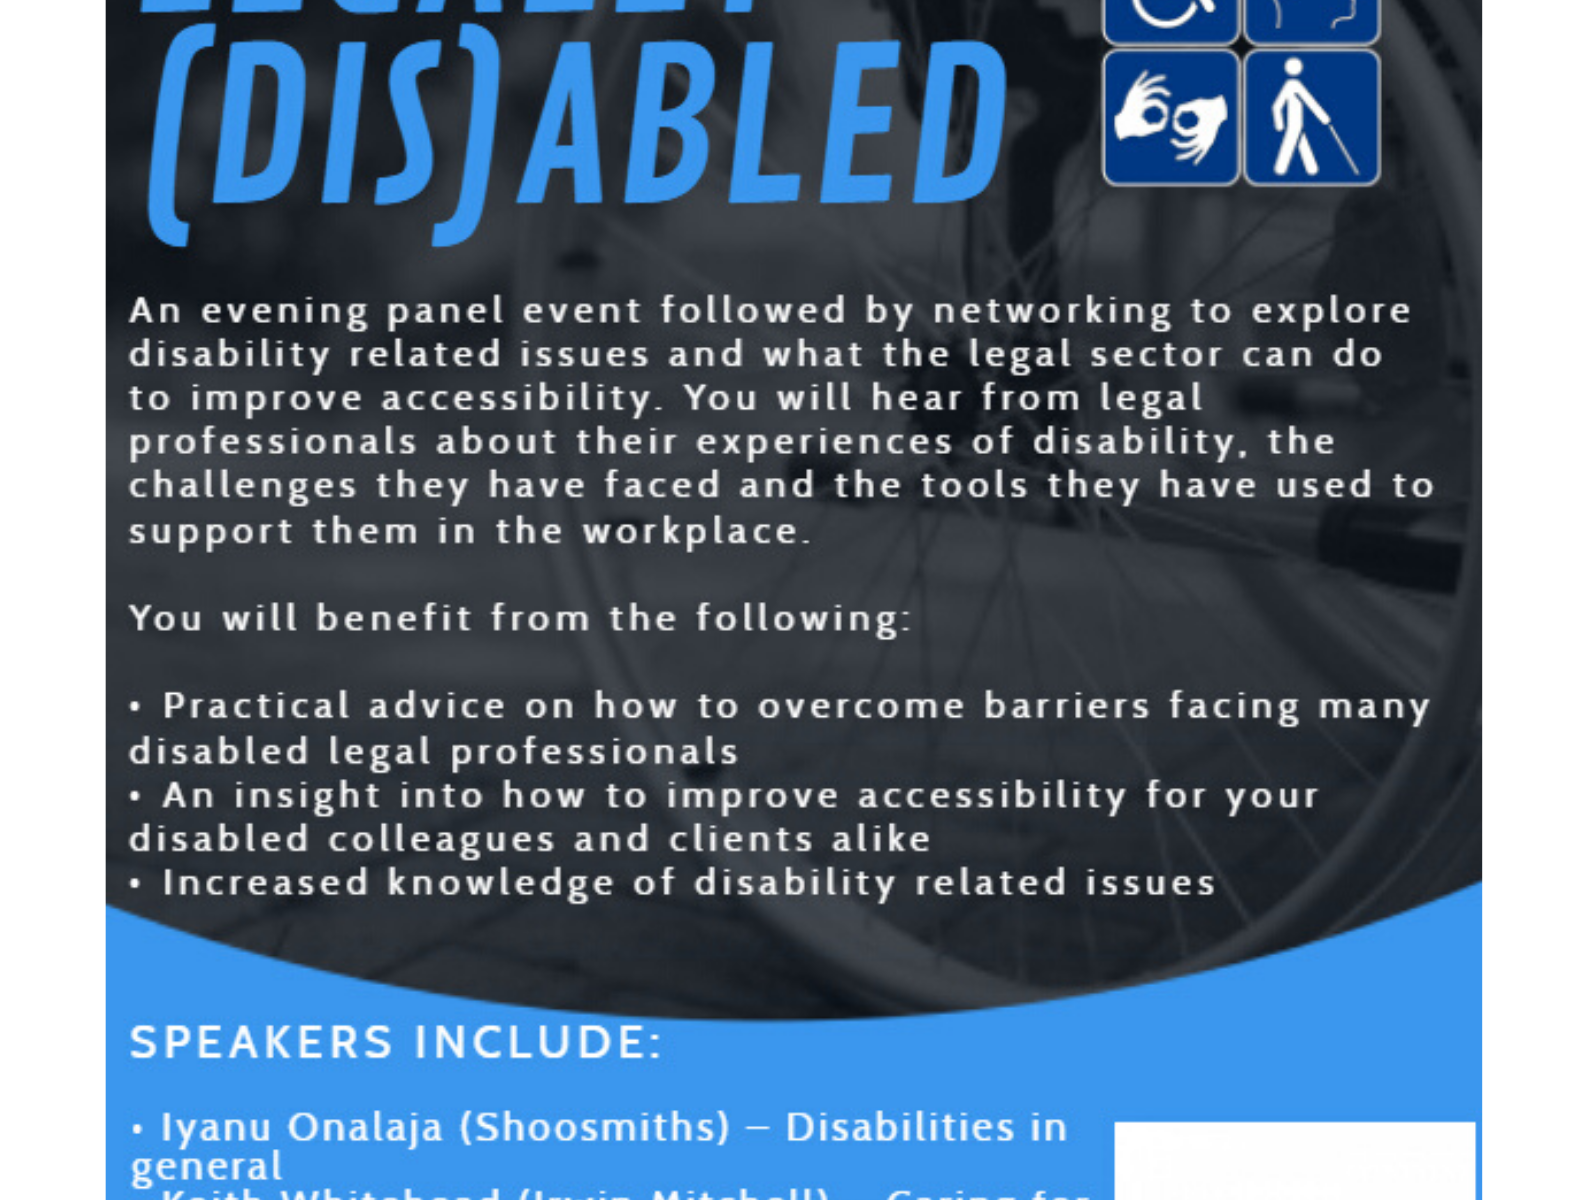 Event poster - inspired by Legally Disabled project - Birmingham Law Society event on disability in the legal profession